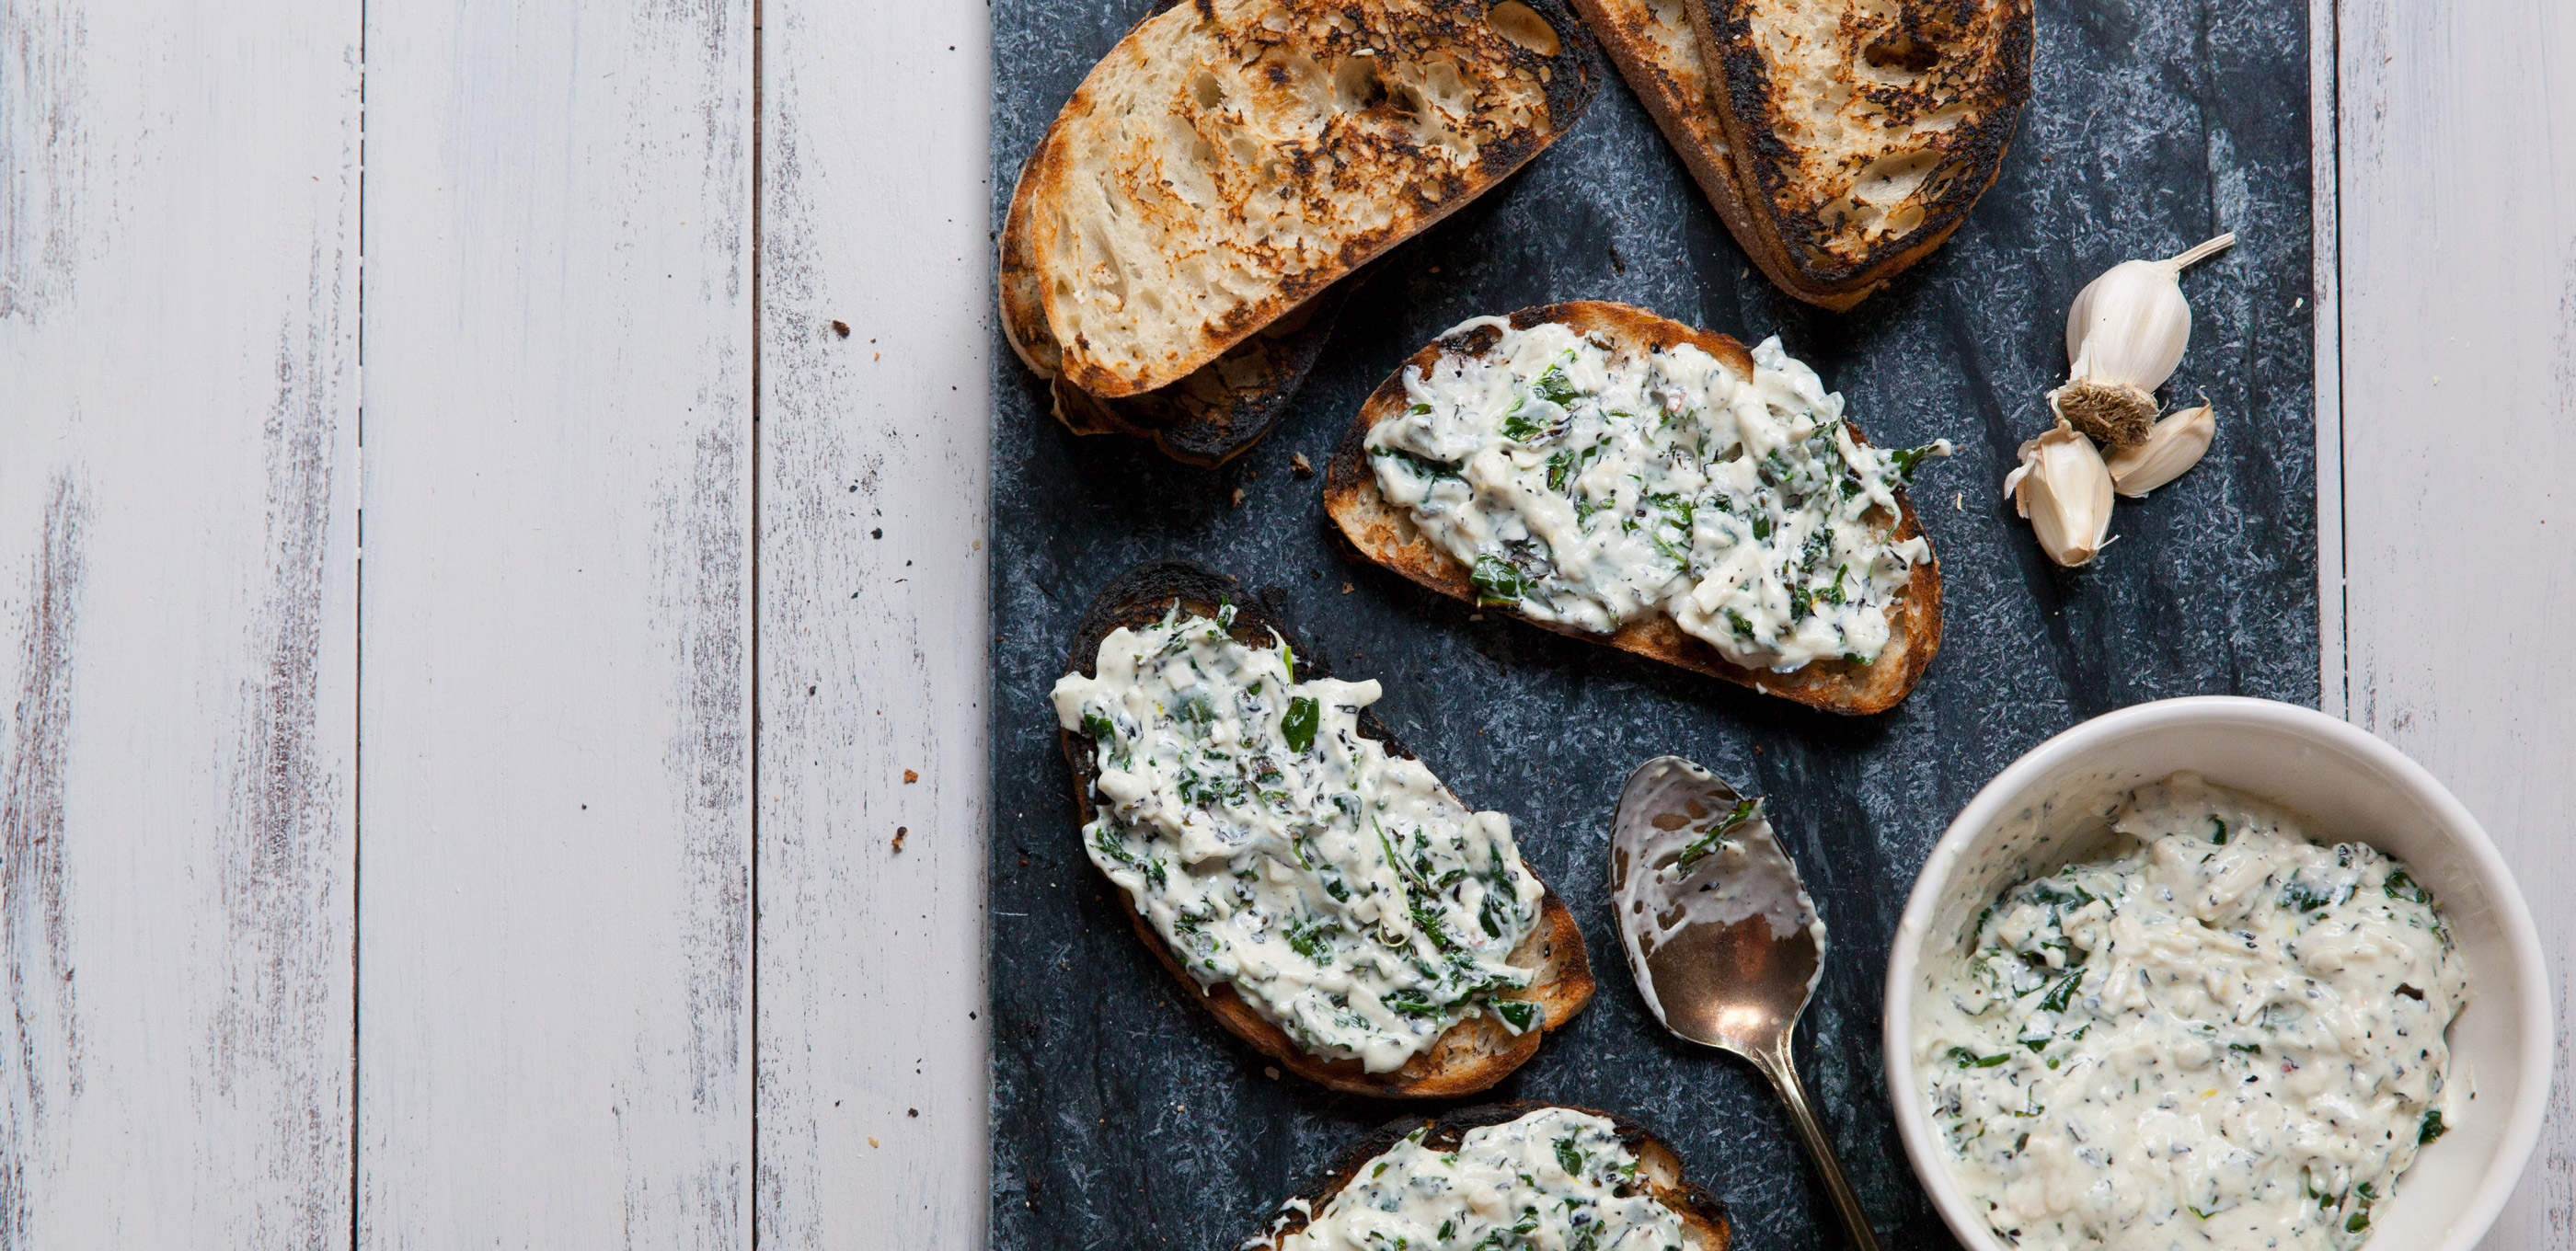 What's better than avocado toast? Creamy kale toast, obvi.